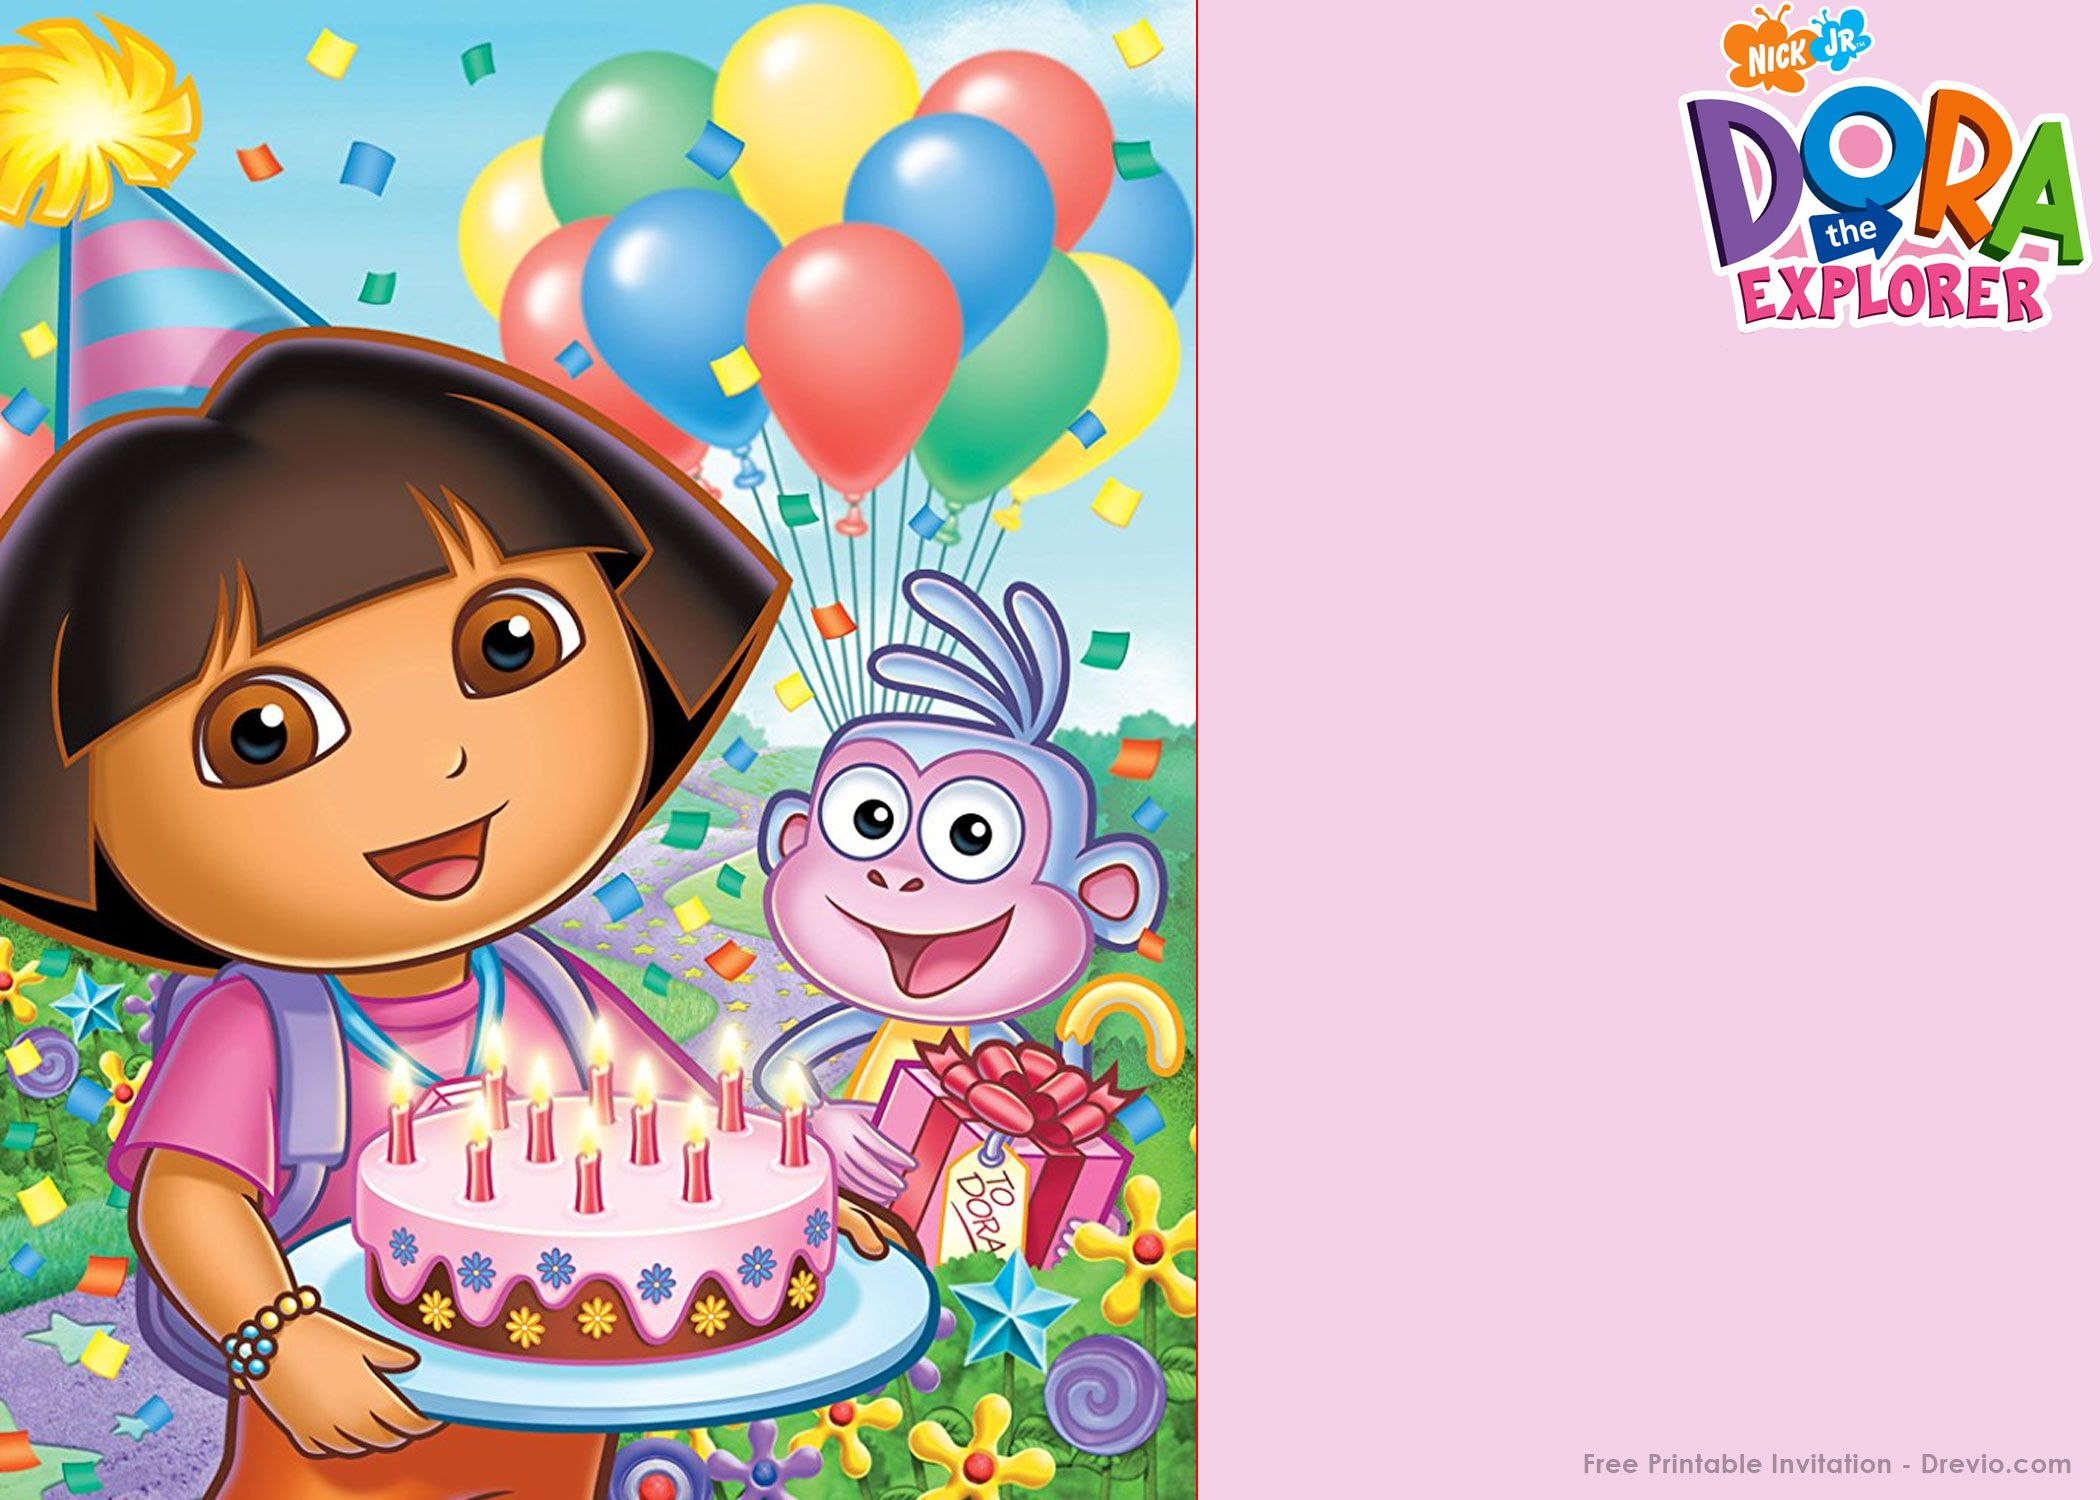 Free Printable Dora The Explorer Party Invitation Template - Dora The Explorer Free Printable Invitations